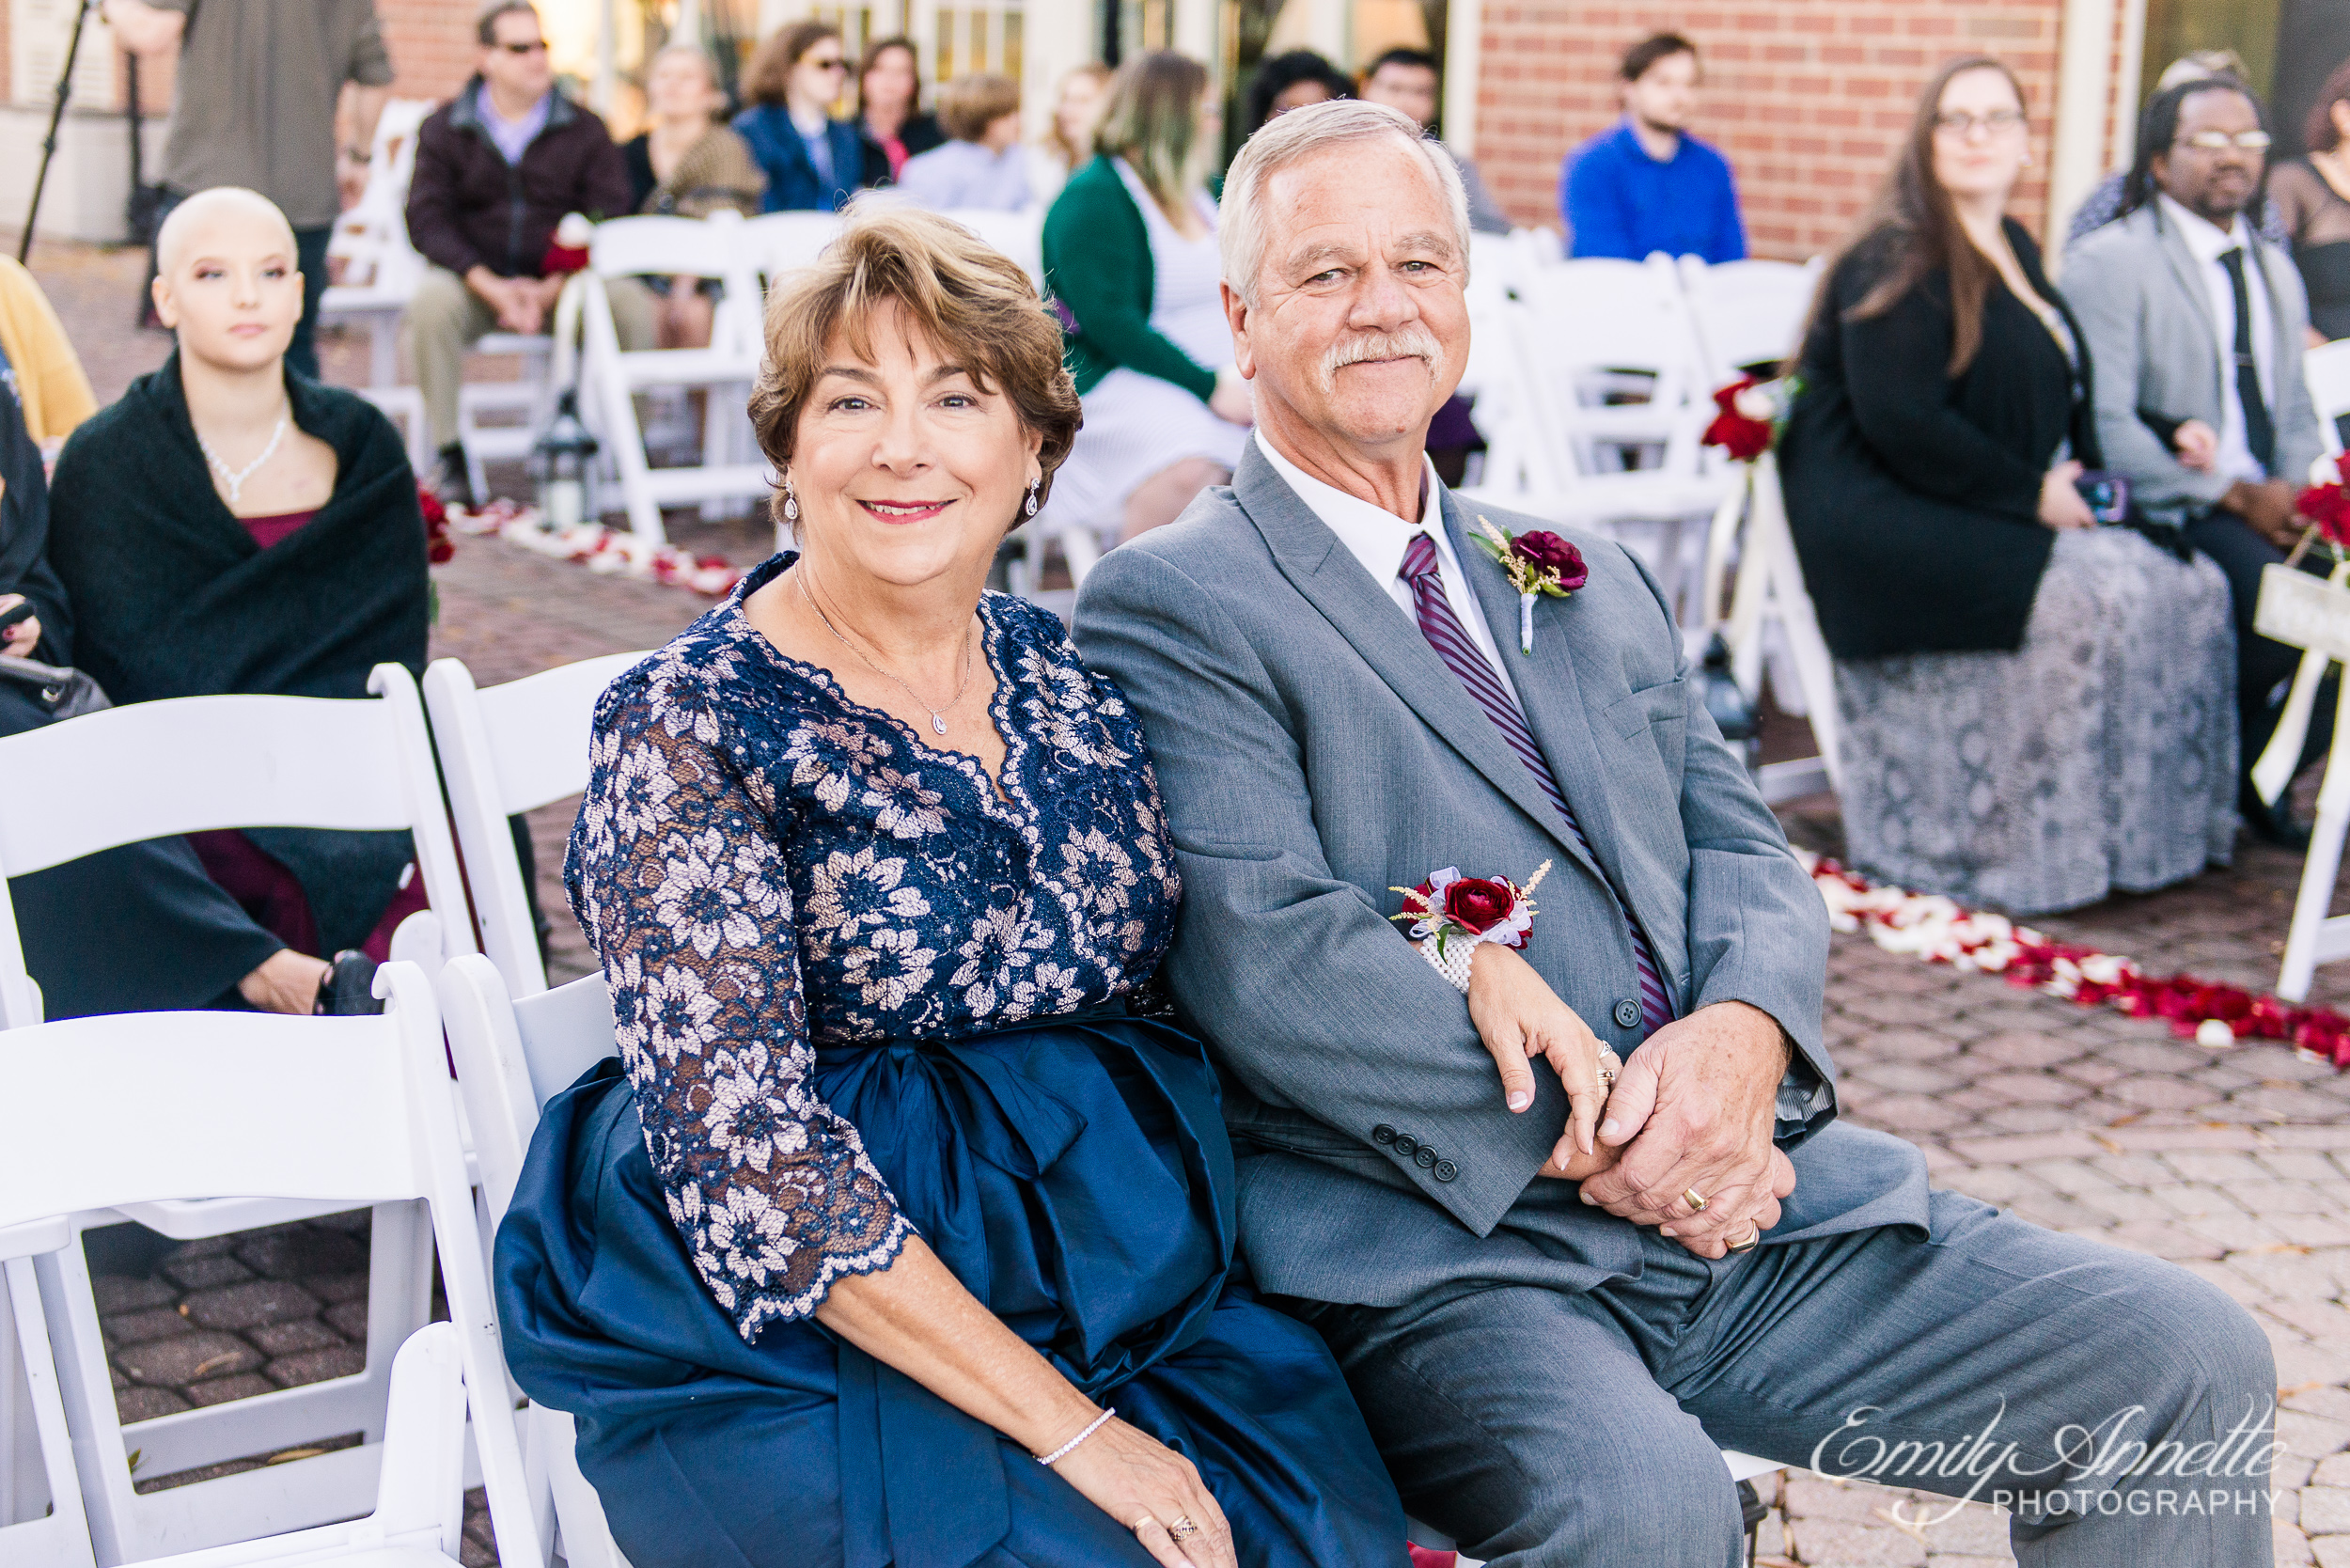 The parents of the groom sitting in the front row before the wedding ceremony at Willow Oaks Country Club in Richmond, Virginia